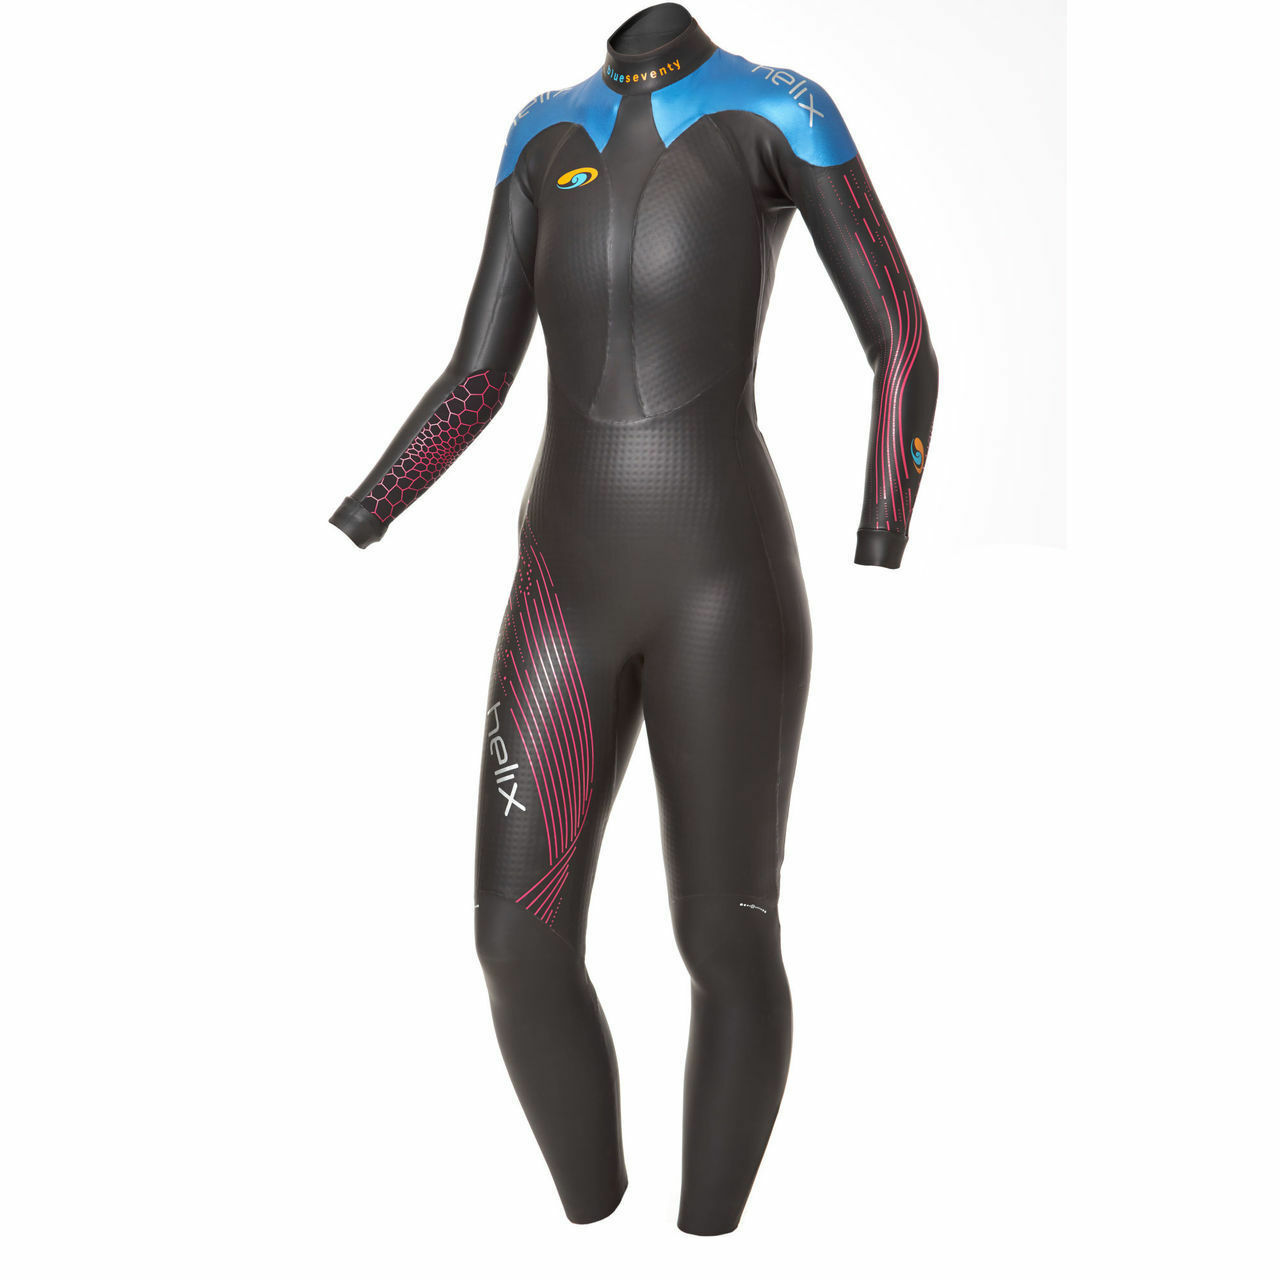 blueee Seventy Women's Helix Full Sleeve Wetsuit  - 2017  quality first consumers first